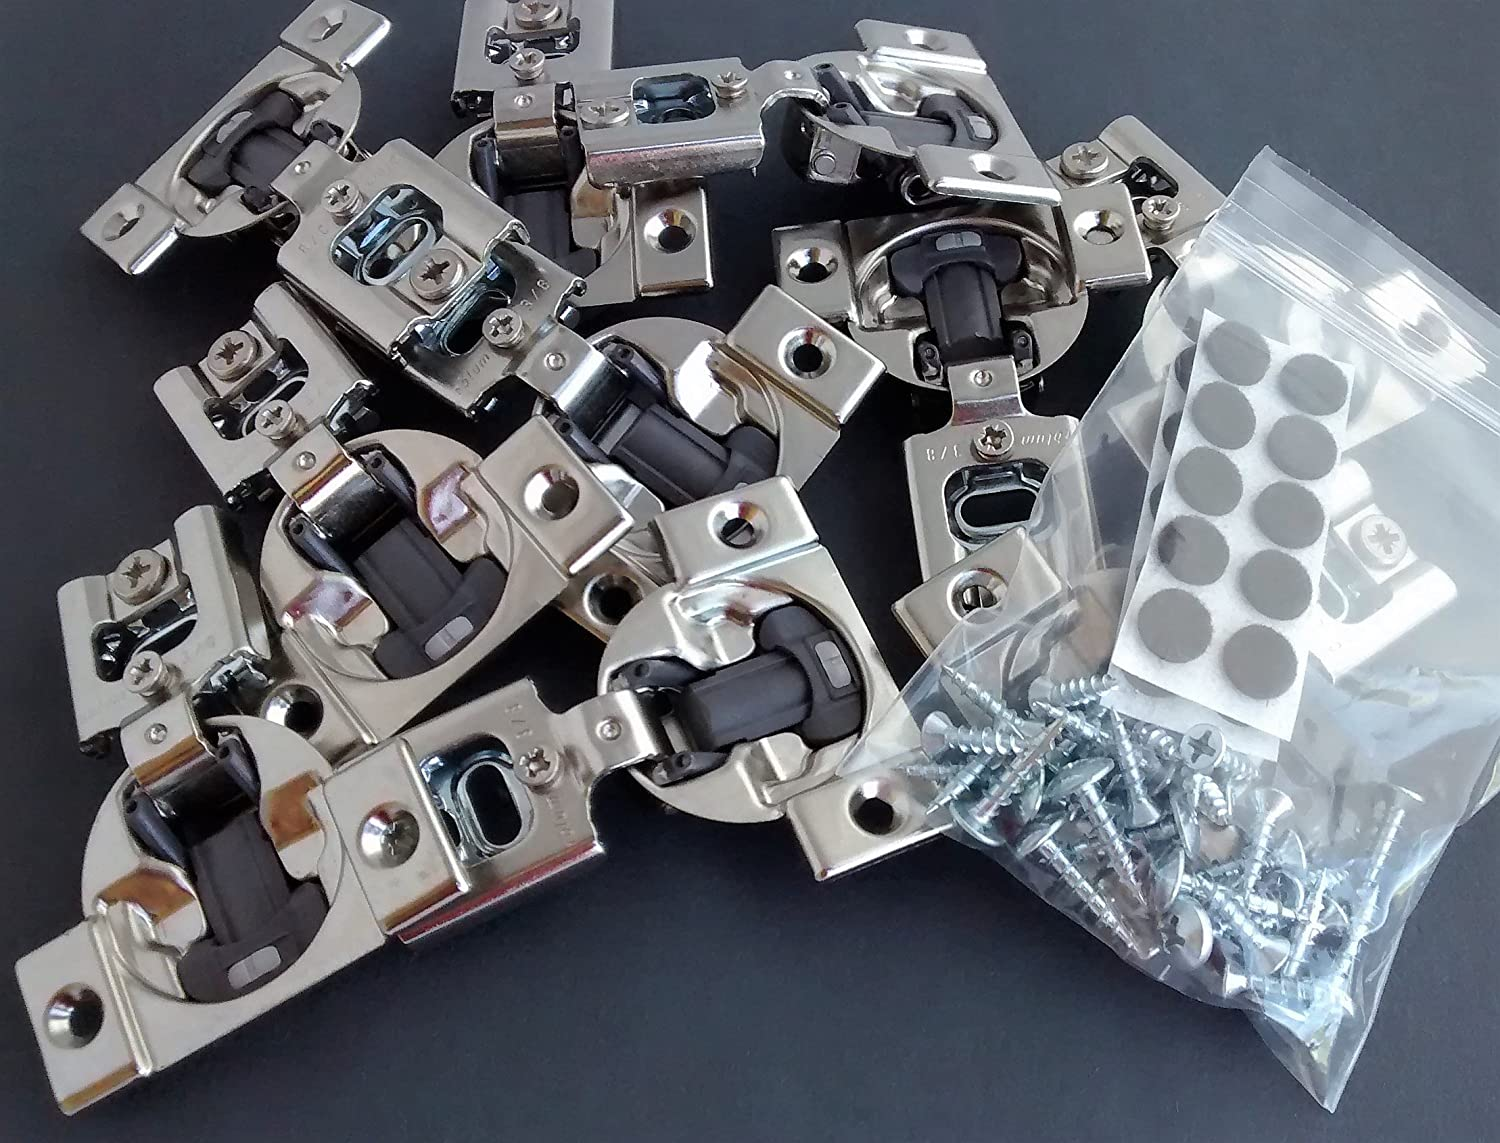 10 Pcs (Five Pairs) Soft Close Blum Blumotion Screw On Hydraulic Compact Hinge - 38N SERIES 105 deg 3/8 IN OVERLAY WITH SCREWS